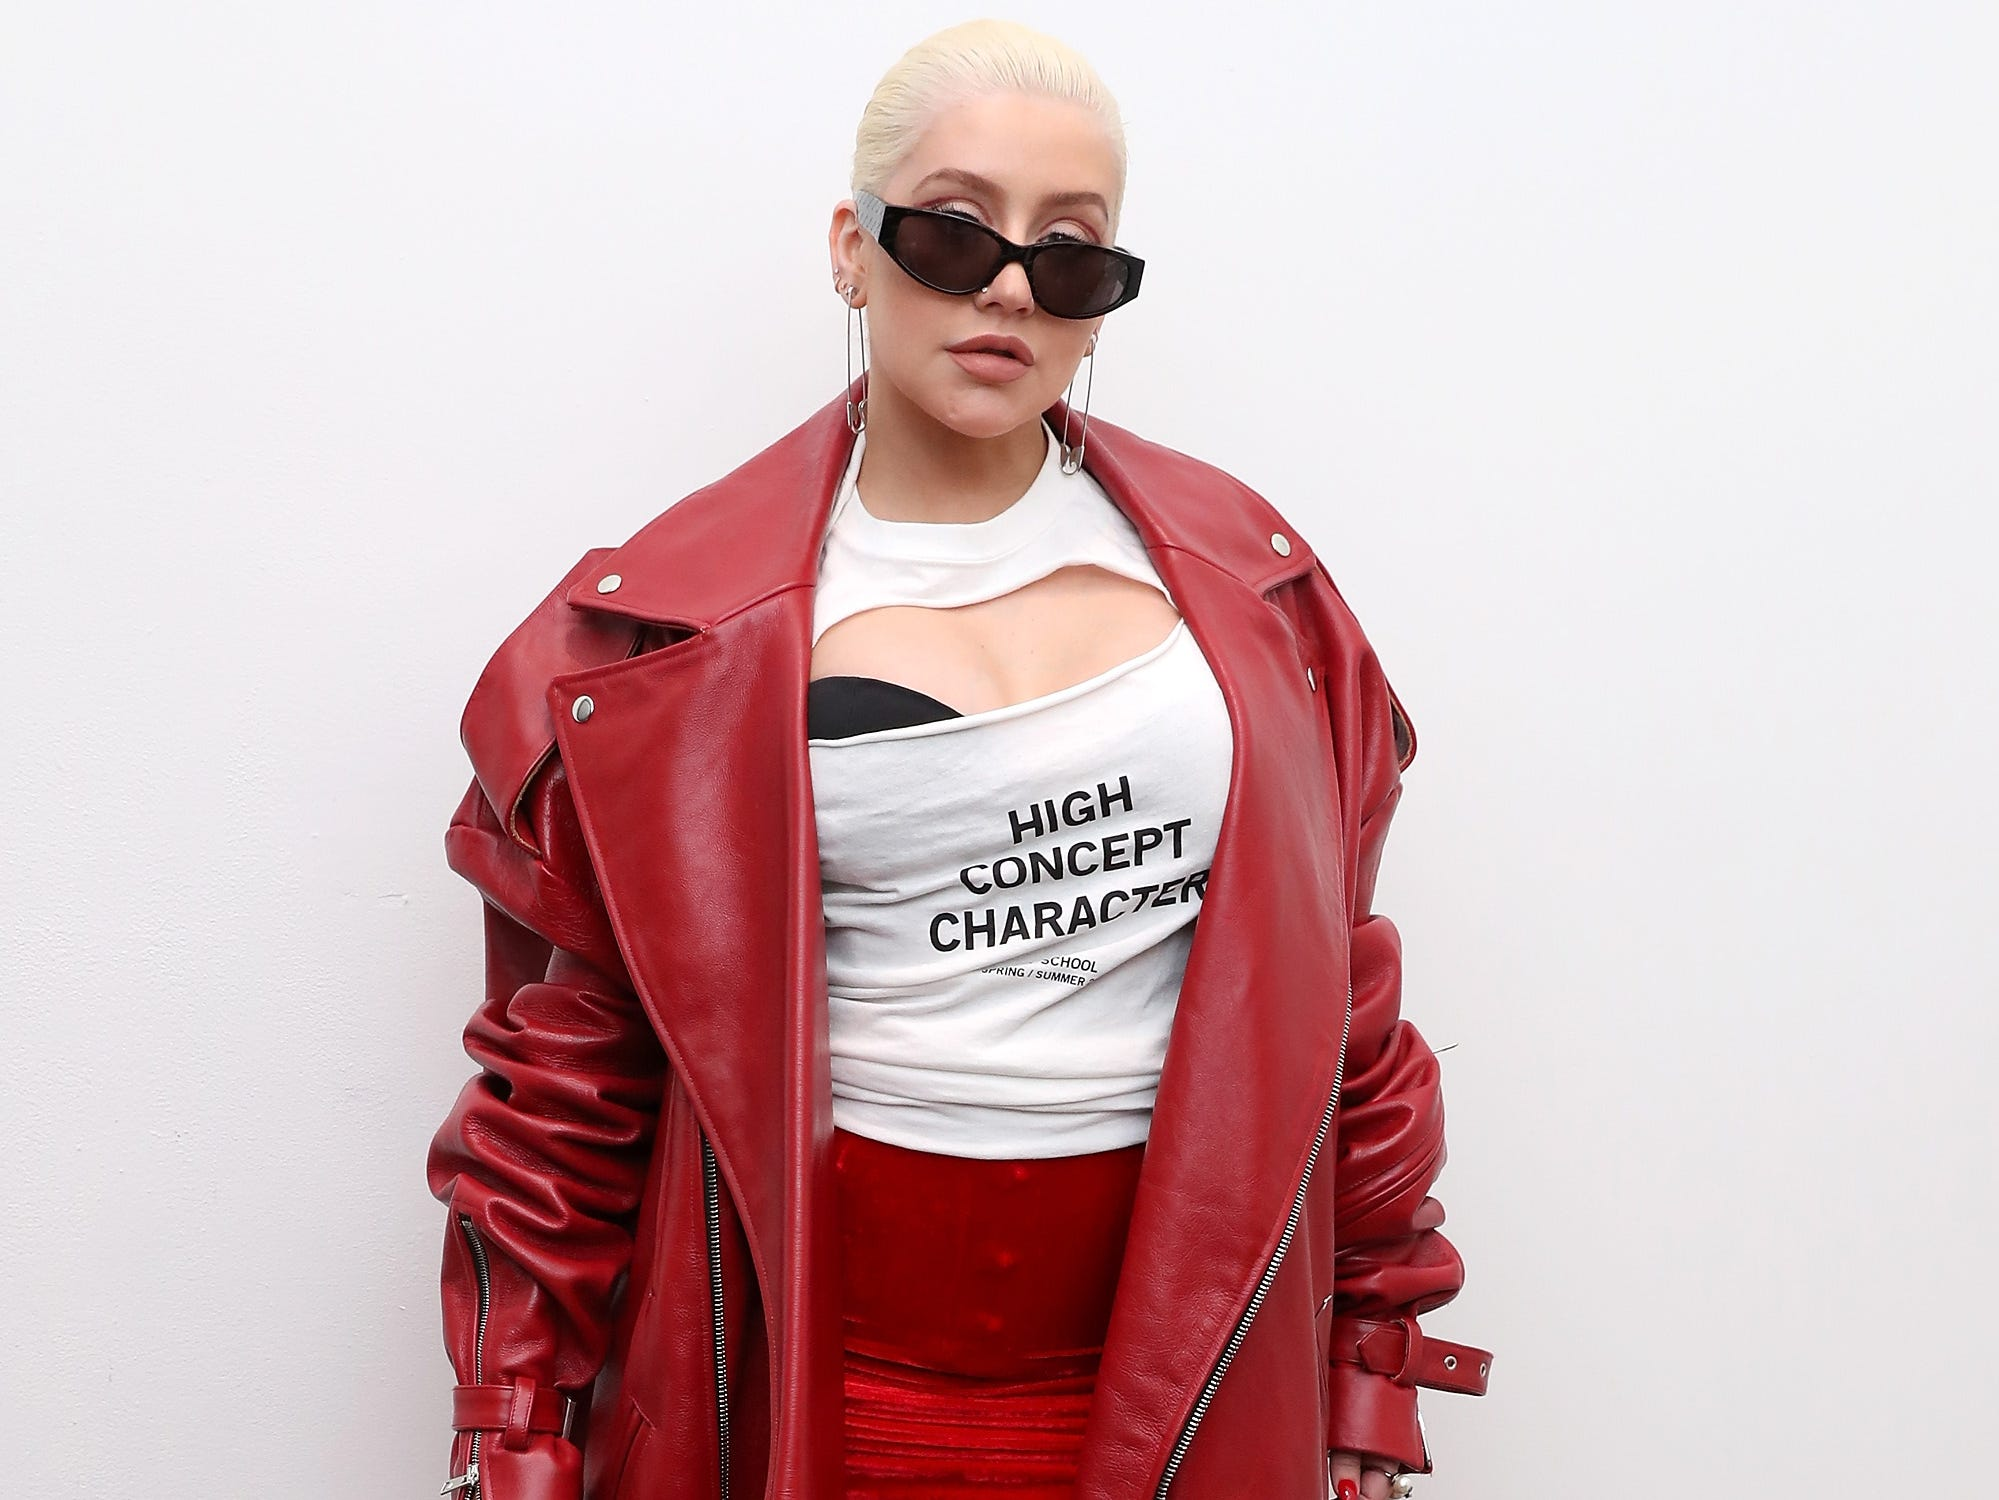 NEW YORK, NY - SEPTEMBER 08:  Christina Aguilera posese backstage at the Christian Cowan Show during New York Fashion Week at Gallery II at Spring Studios on September 8, 2018 in New York City.  (Photo by Cindy Ord/Getty Images for Christian Cowan) ORG XMIT: 775216452 ORIG FILE ID: 1029388604